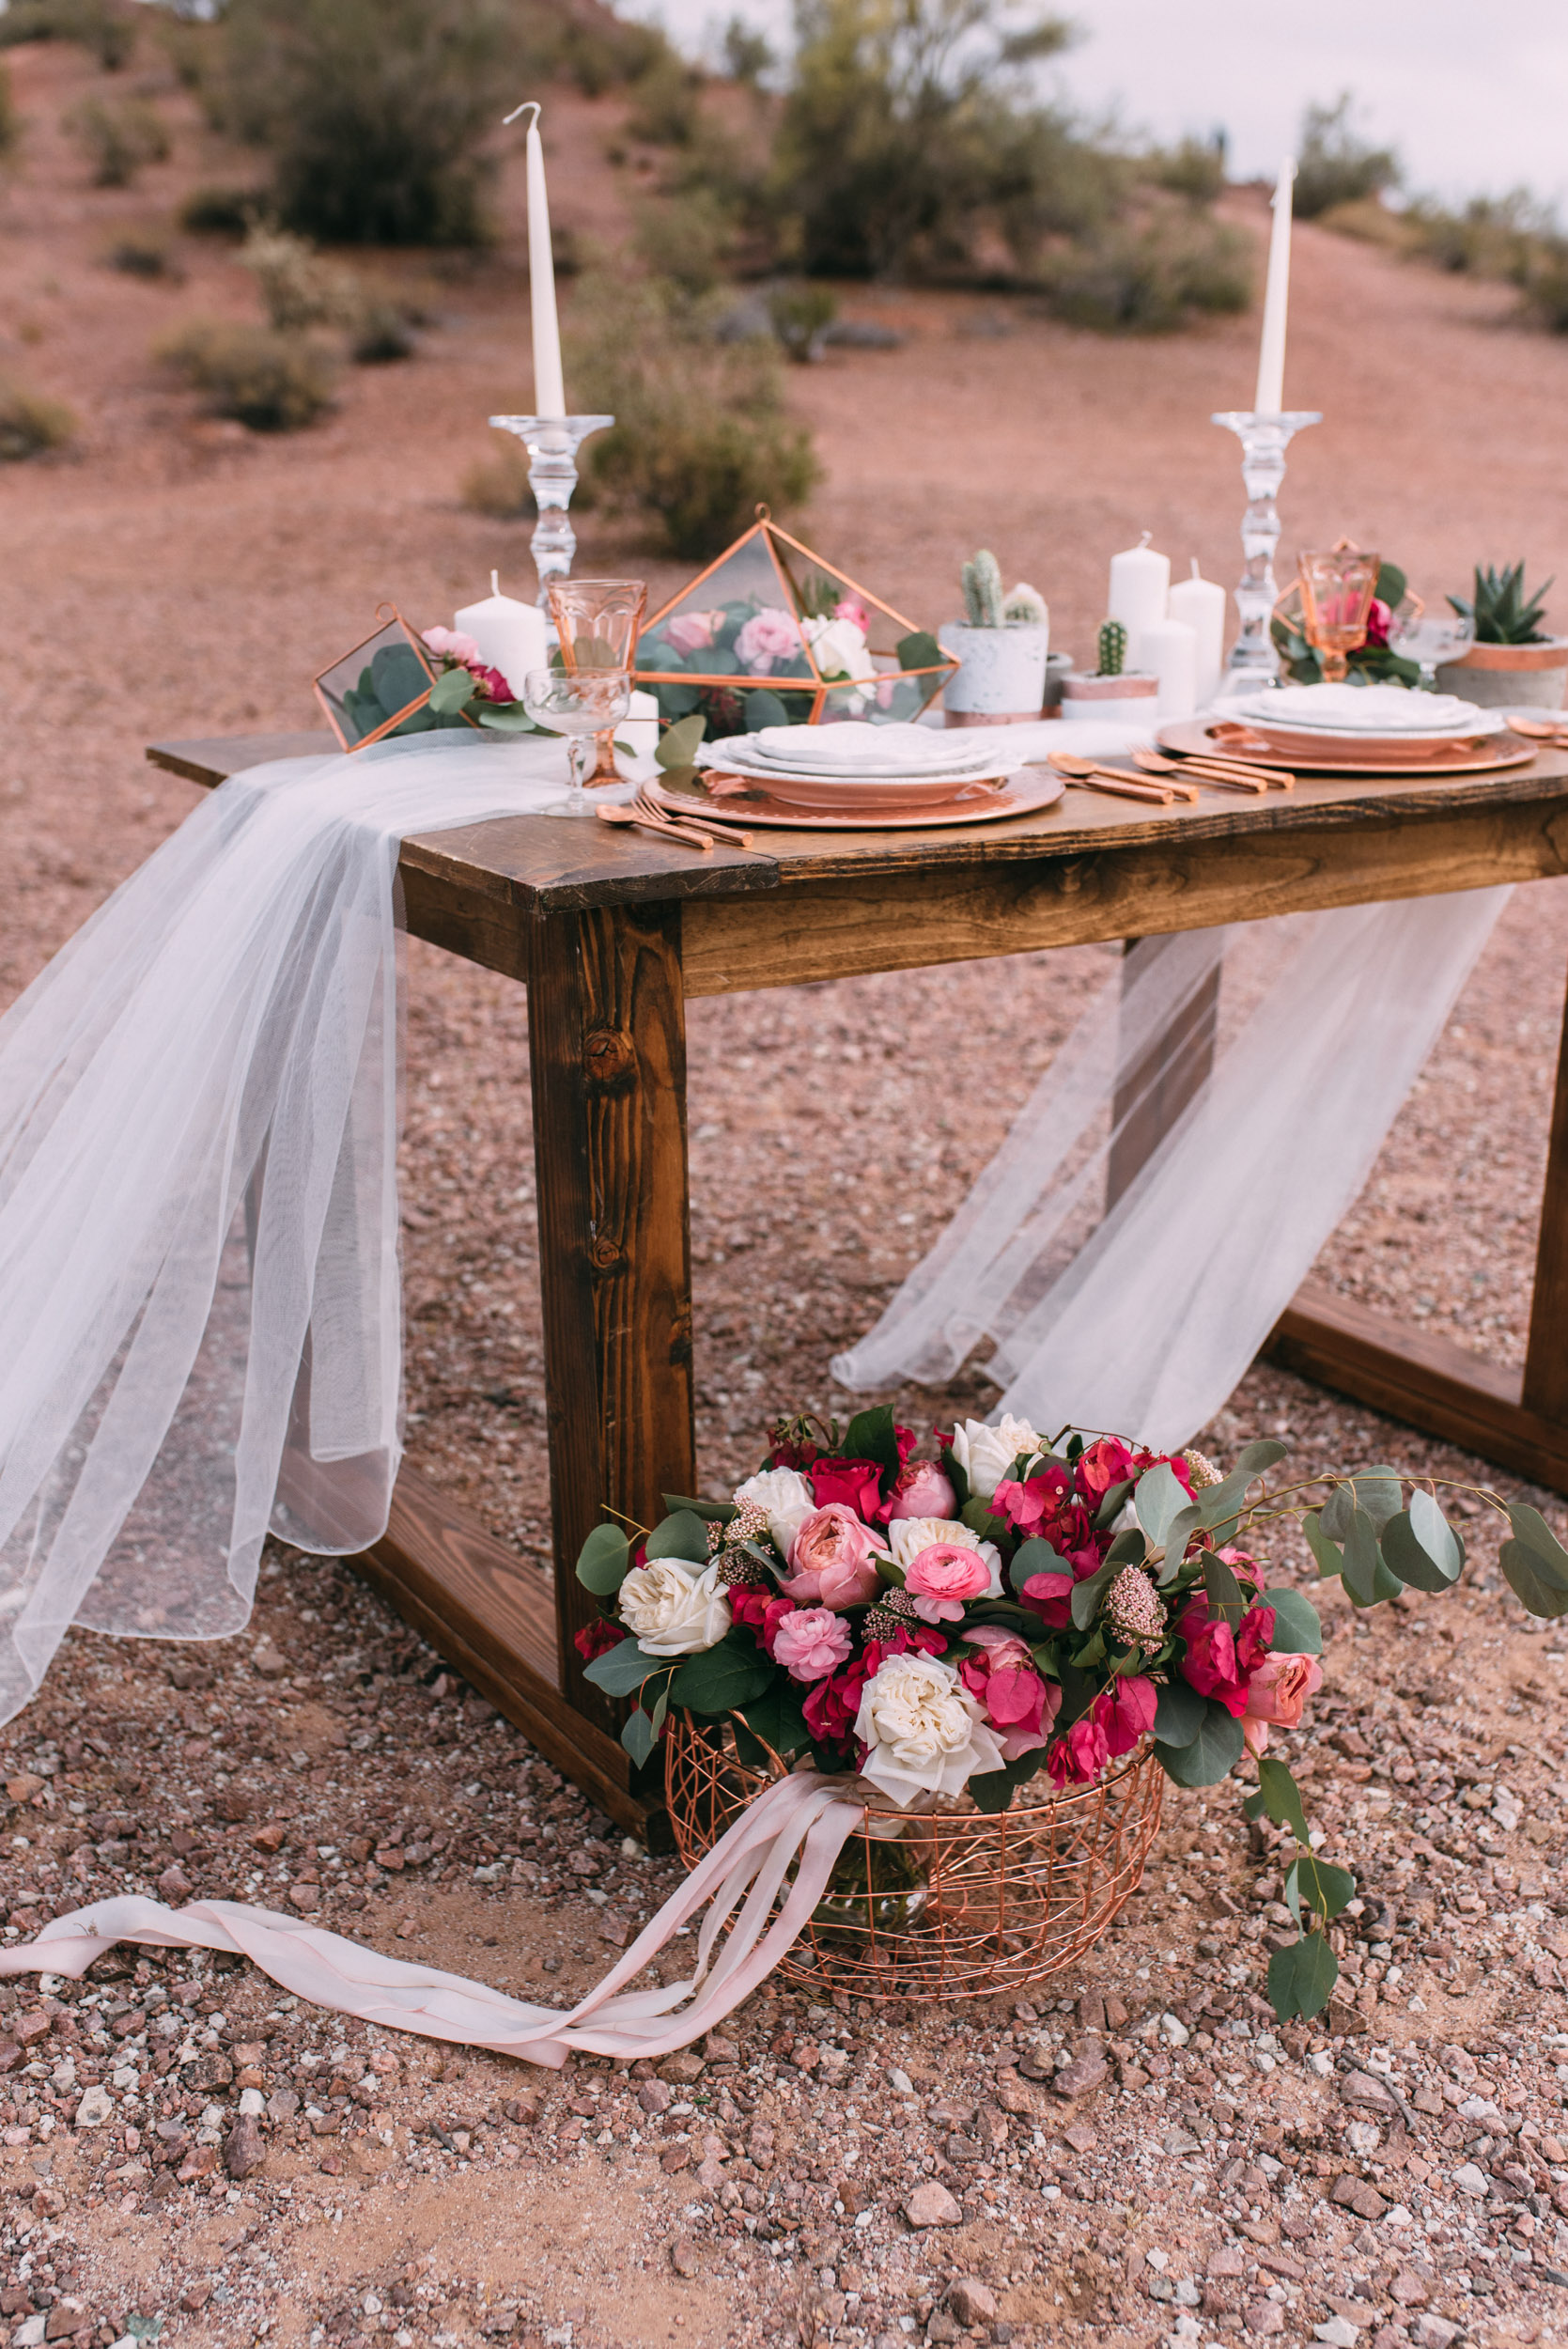 Rustic farm table with wedding table setting and wedding bouque tin arz.jpg